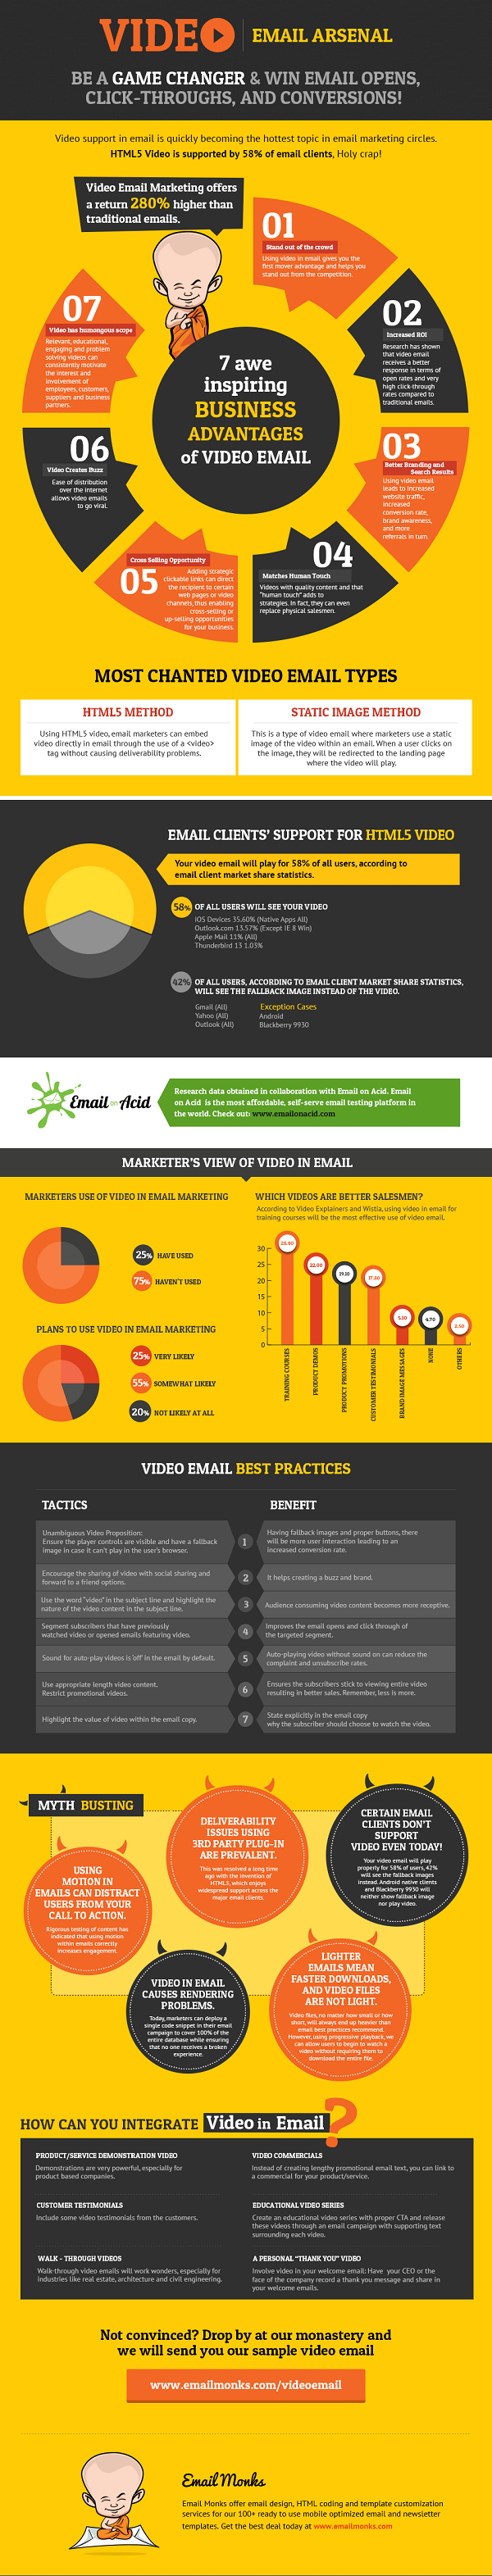 Email Monks: 7 Awe Inspiring Business Advantages of Video Email